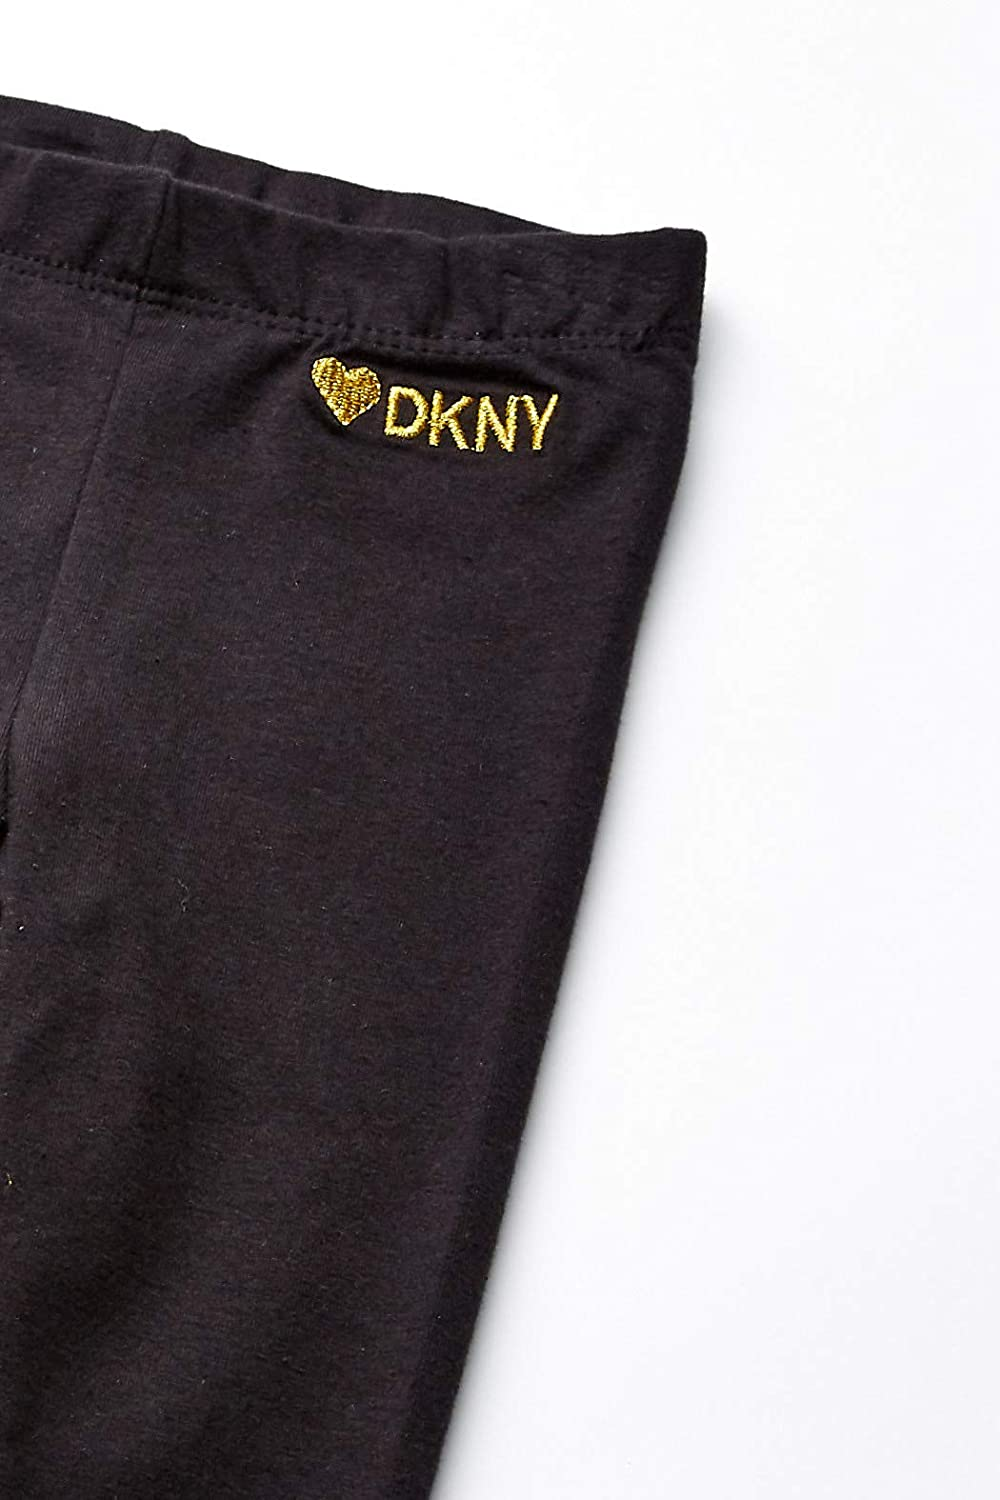 DKNY Girls Fashion Top and Legging Set More Styles Available